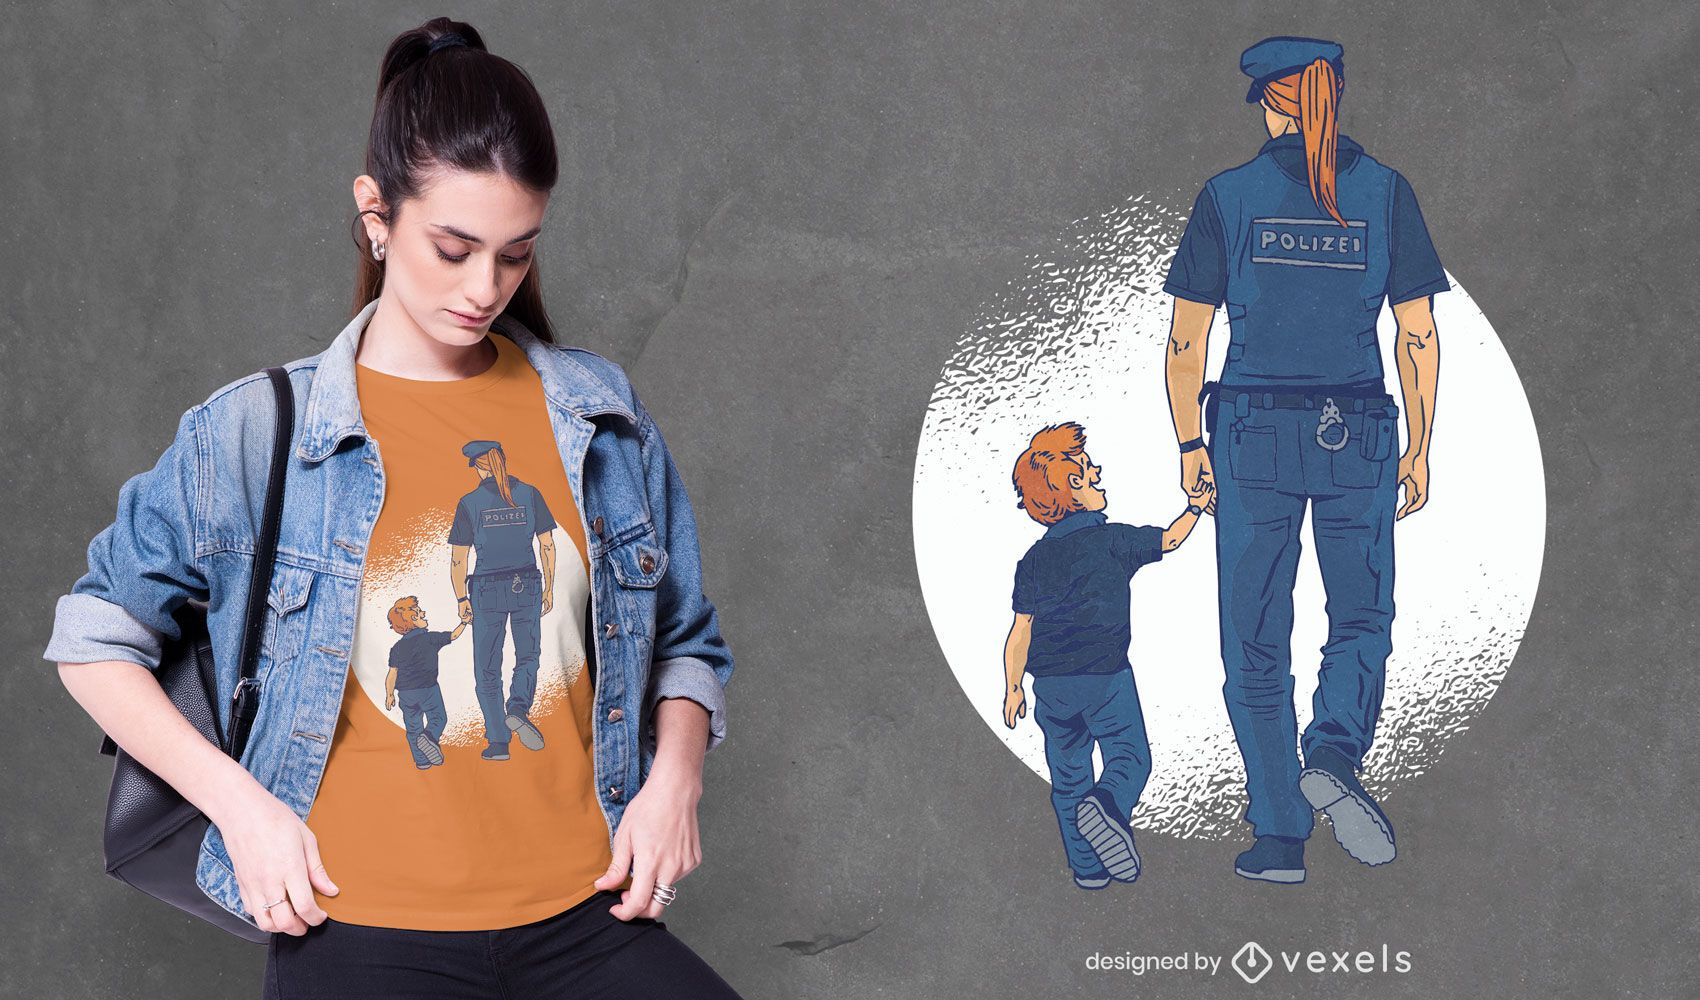 Police woman and child t-shirt design